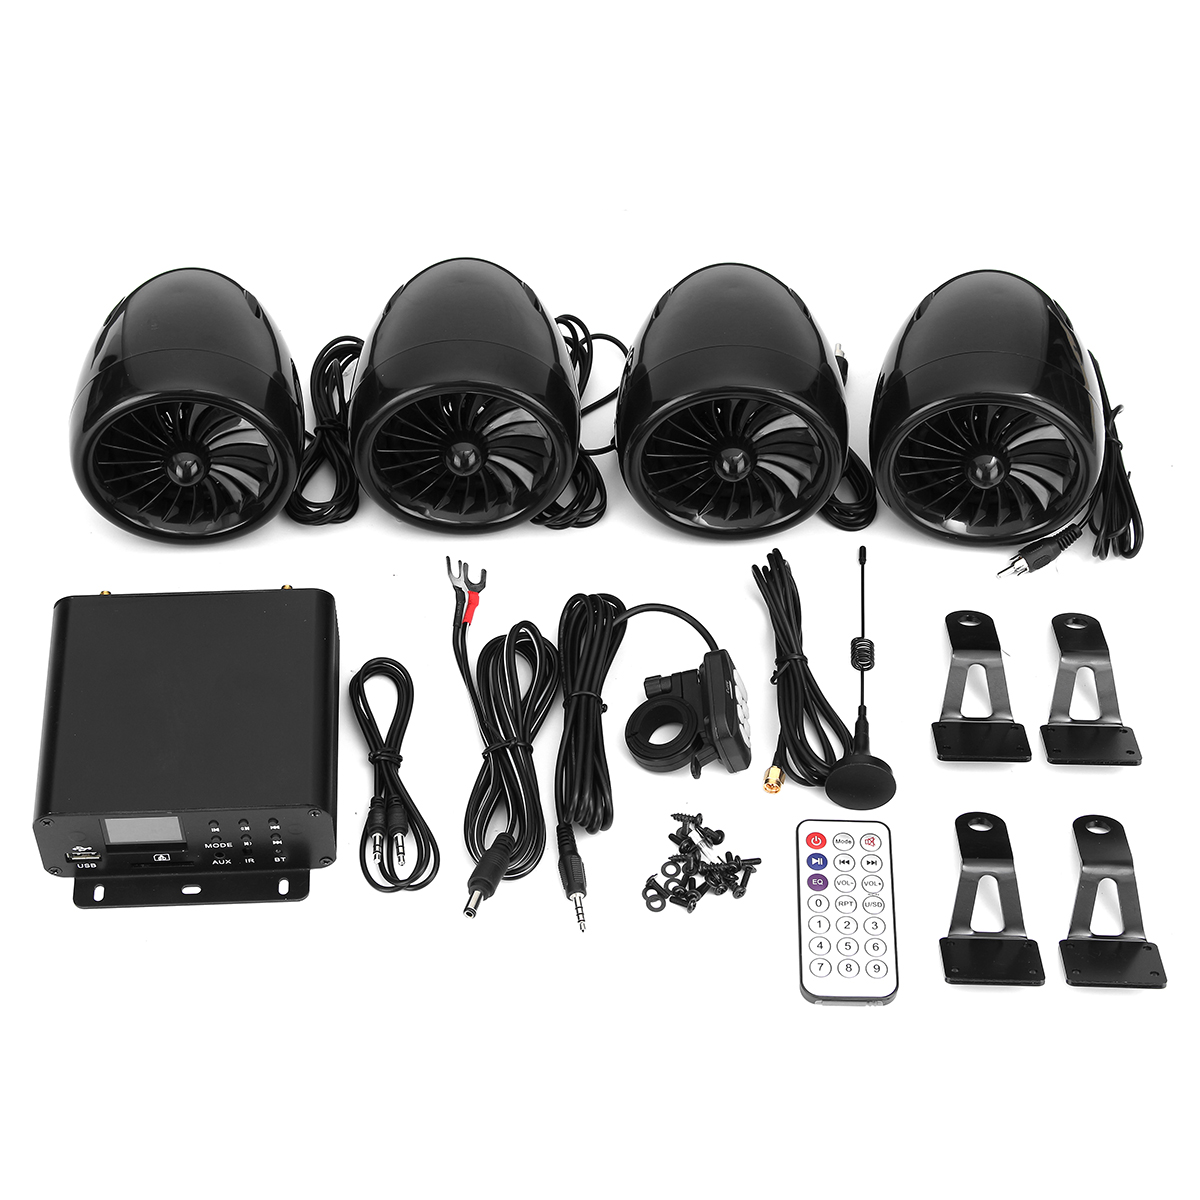 1000W LCD bluetooth 4 Speakers+Amplifier System Handlebar Mount Remote Control For Motorcycle/ATV